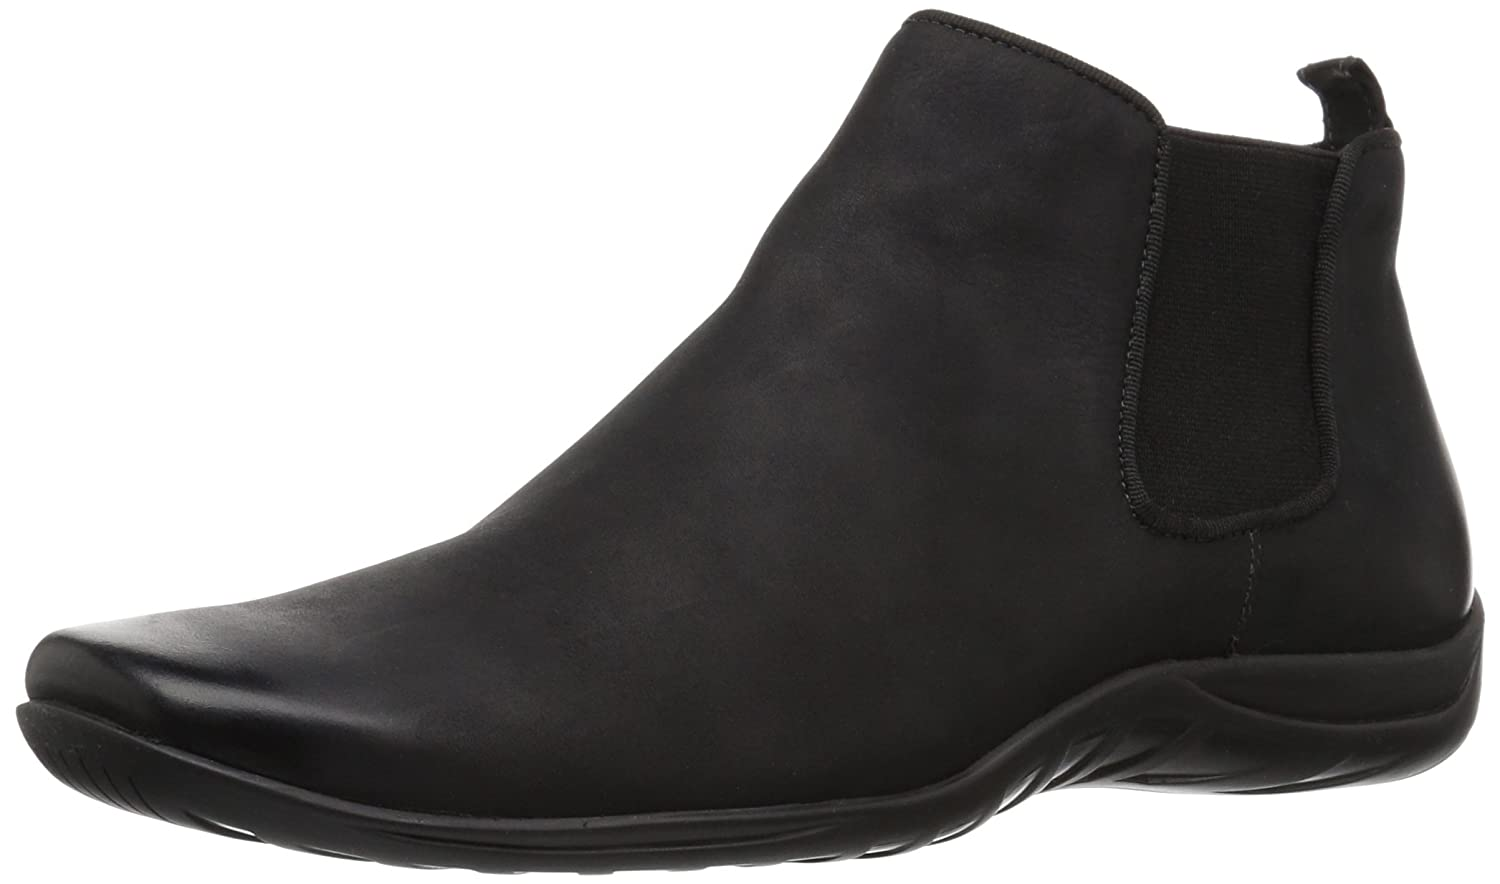 Walking Cradles Women's Ante Ankle Boot B0737J62XQ 11 B(M) US|Black Distressed